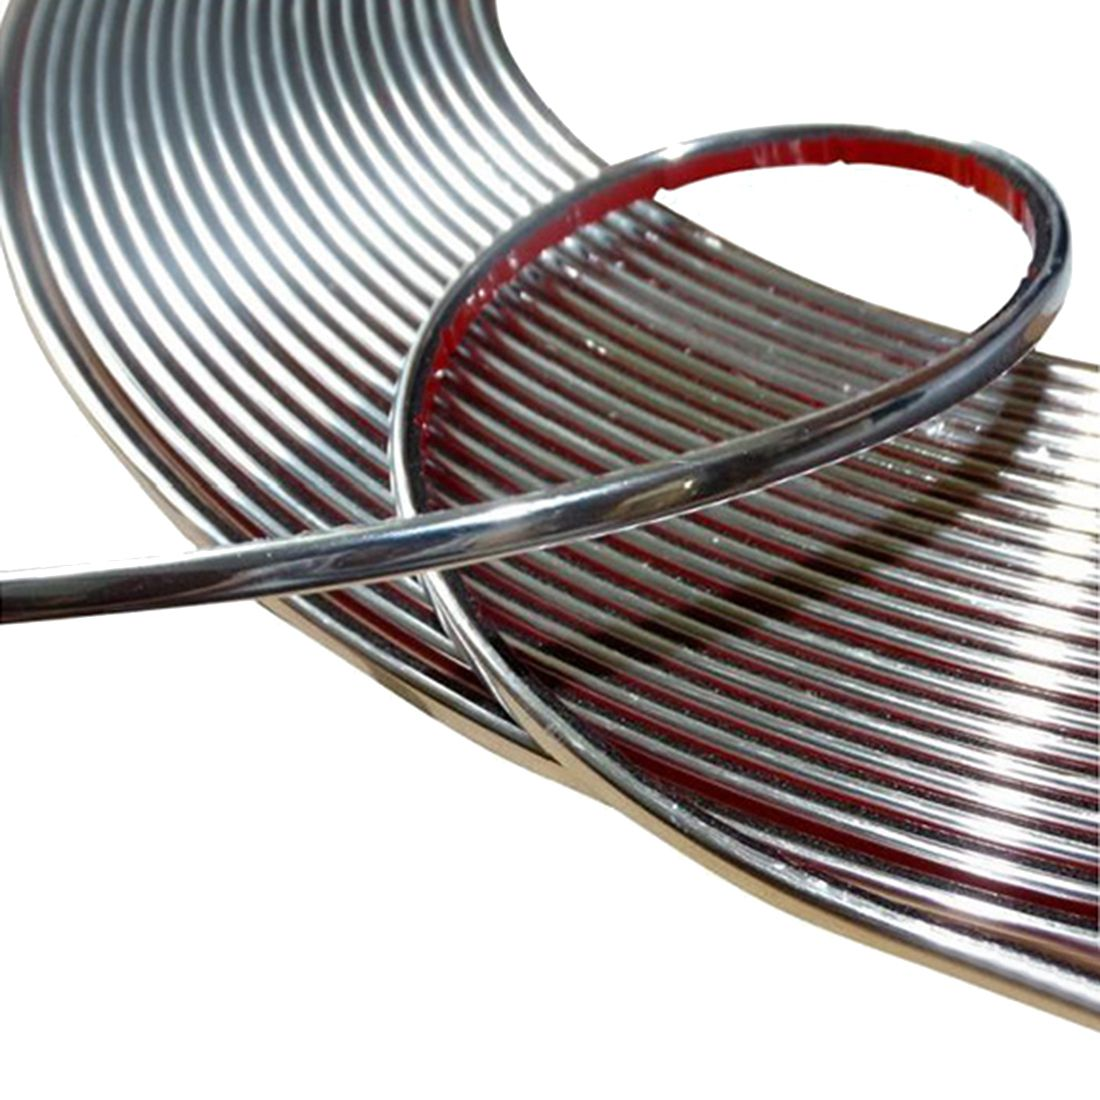 6mm 15m Adhesive Strip Color Chrome Nickel